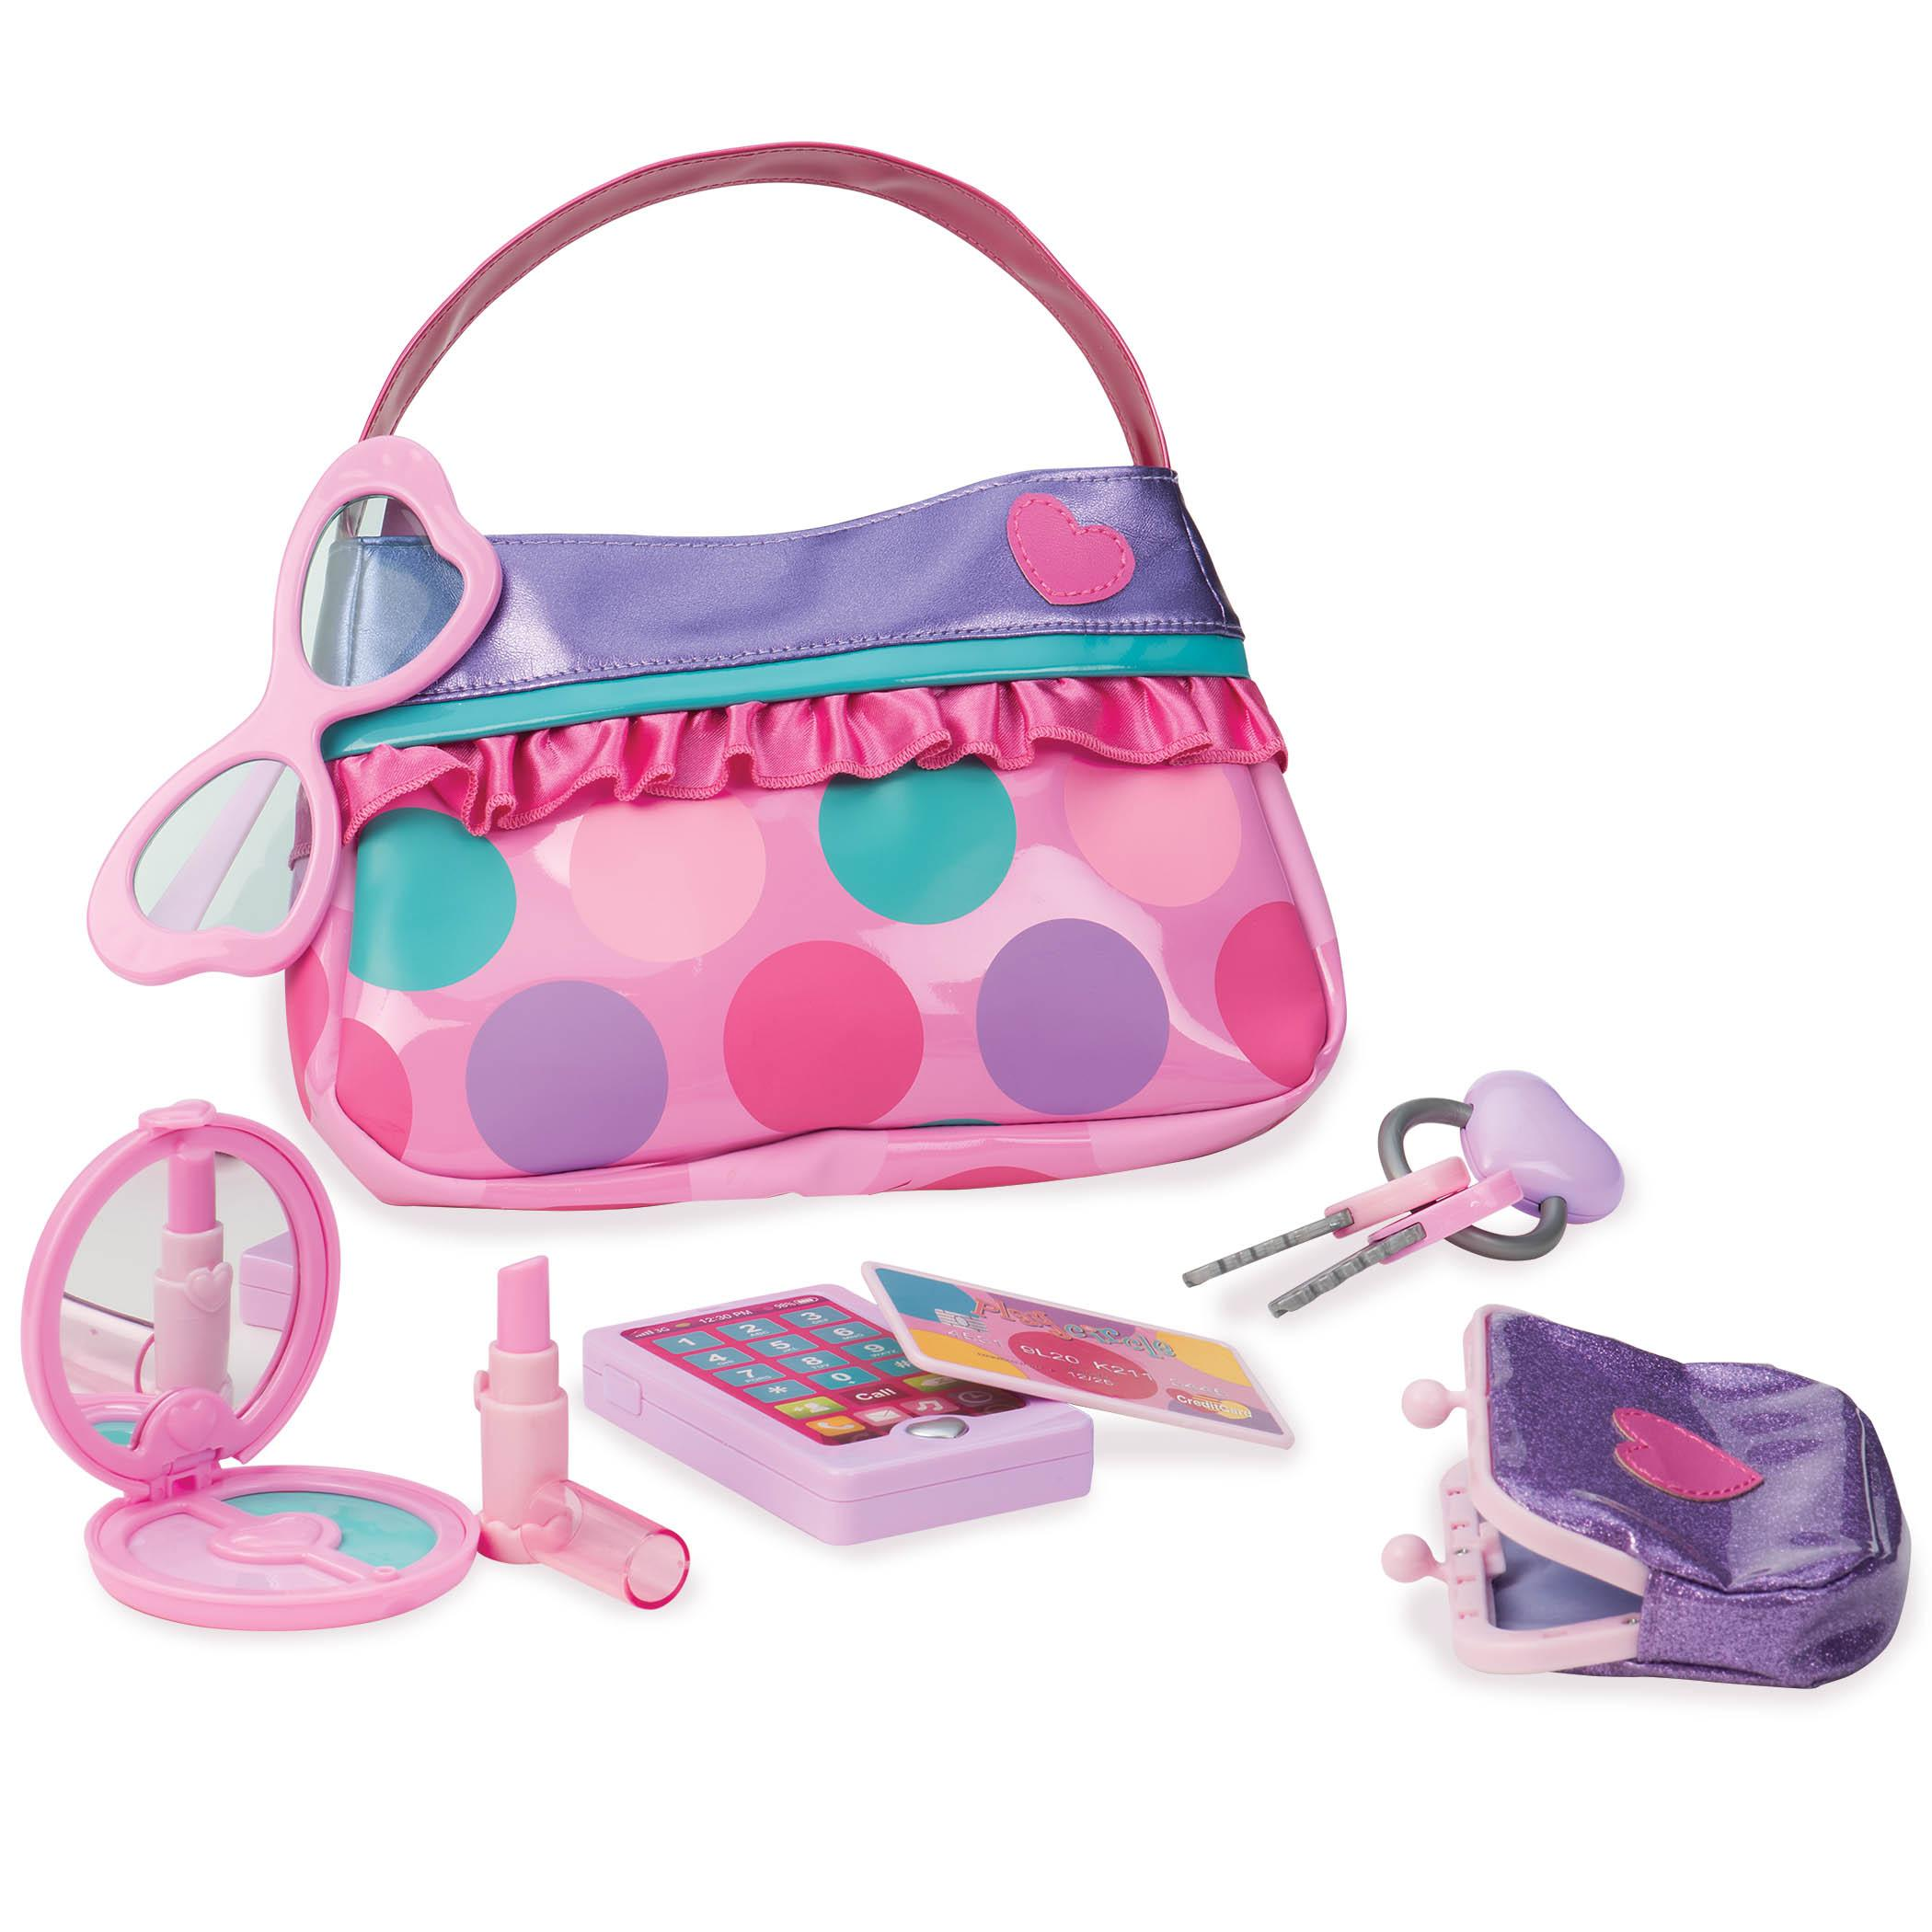 Amazon.com: Play Circle Purse Set Pretend Play for Kids